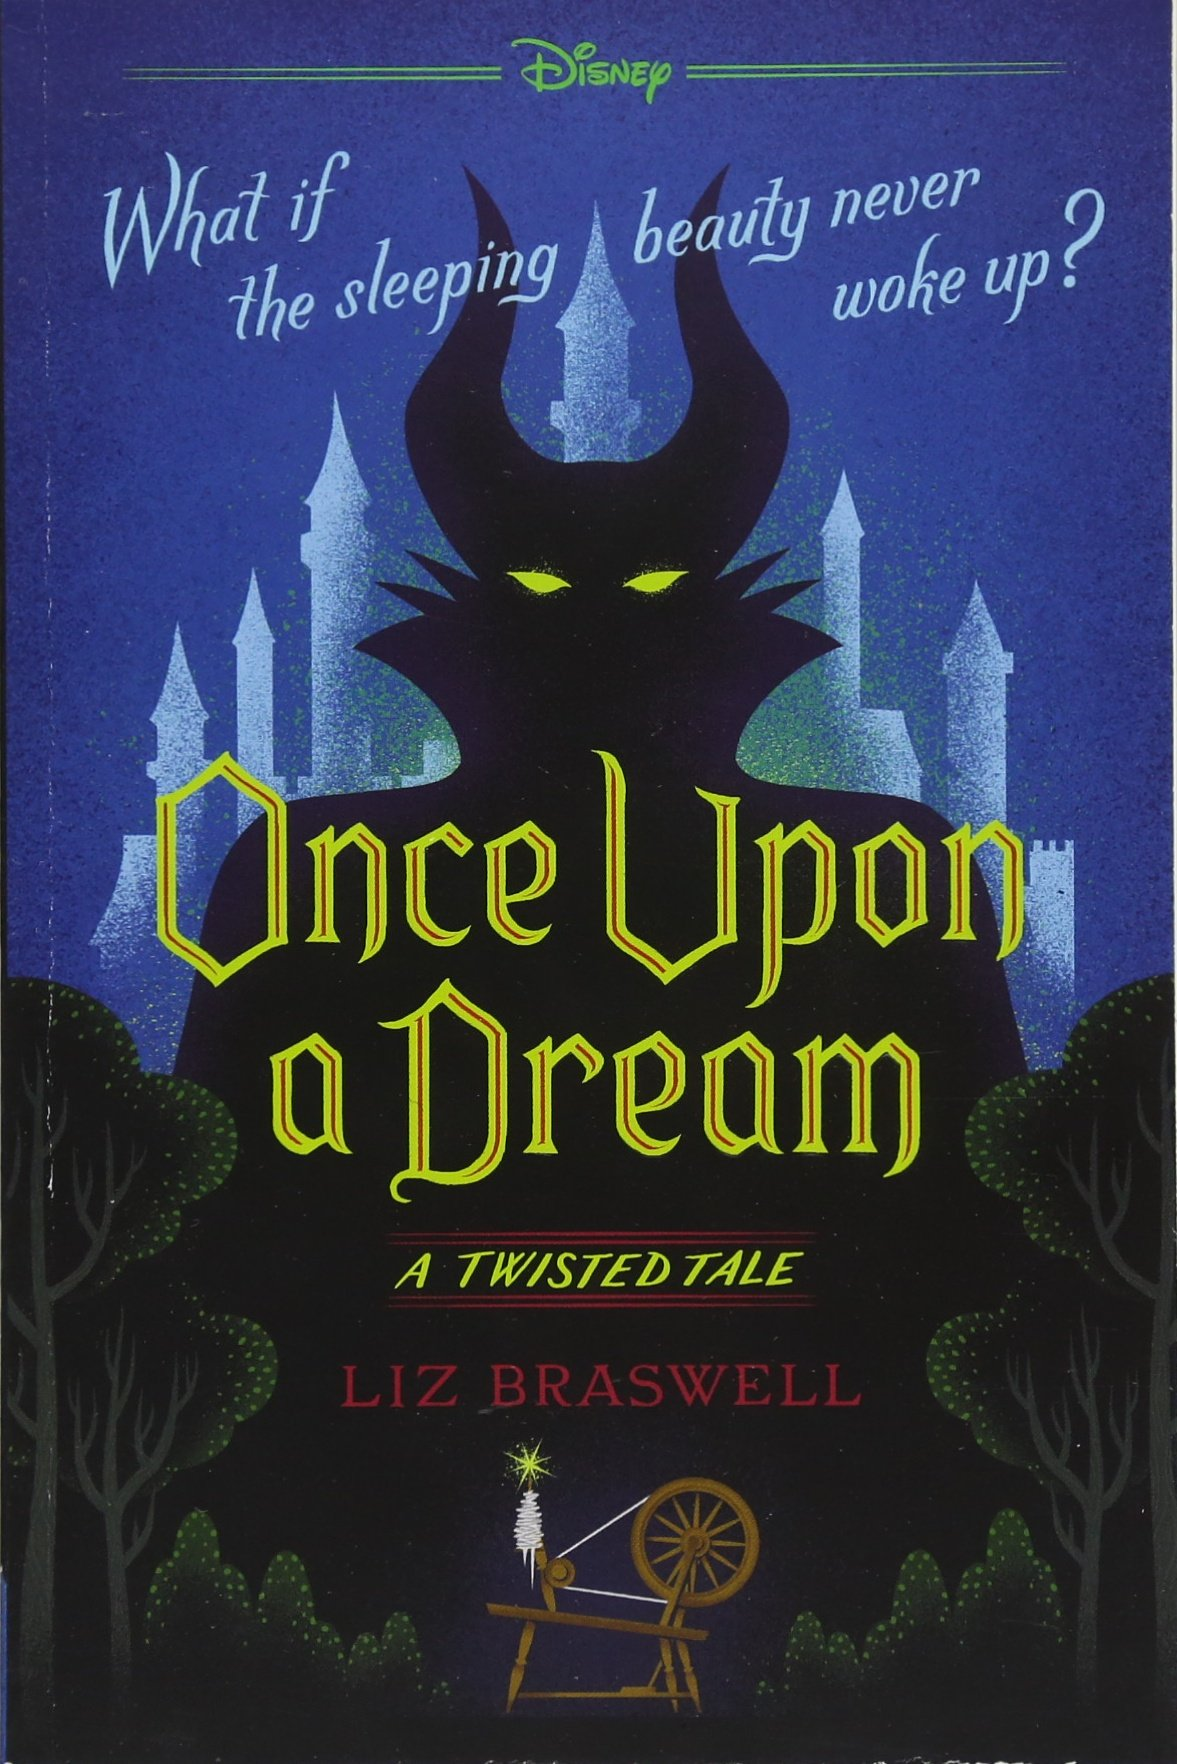 Amazon.com: Once Upon a Dream: A Twisted Tale (9781484707302): Braswell, Liz:  Books